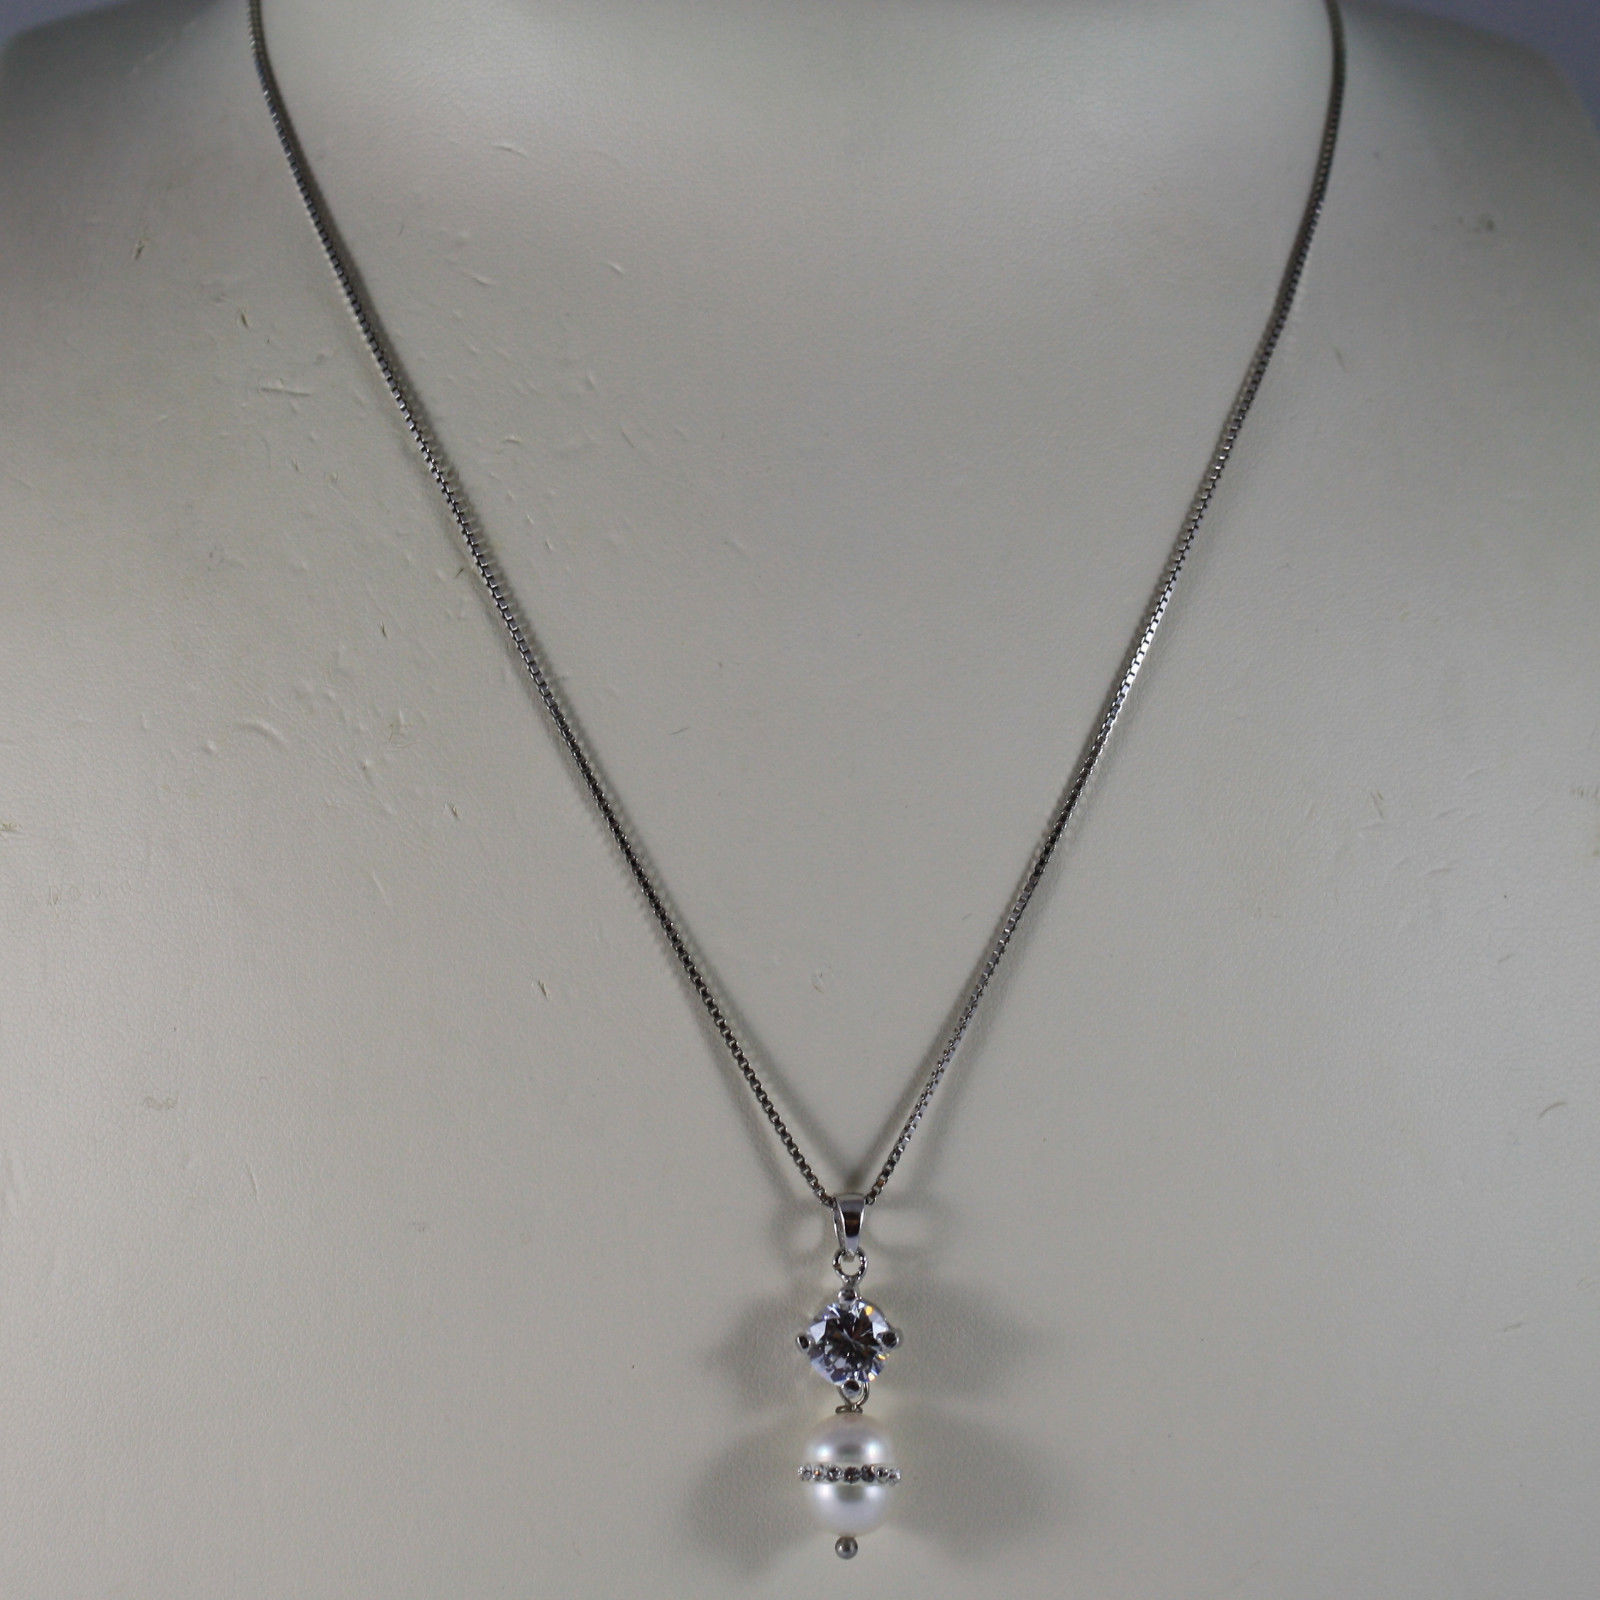 .925 RHODIUM NECKLACE WITH WHITE PEARL WITH ZIRCONS AND CENTRAL CRISTAL